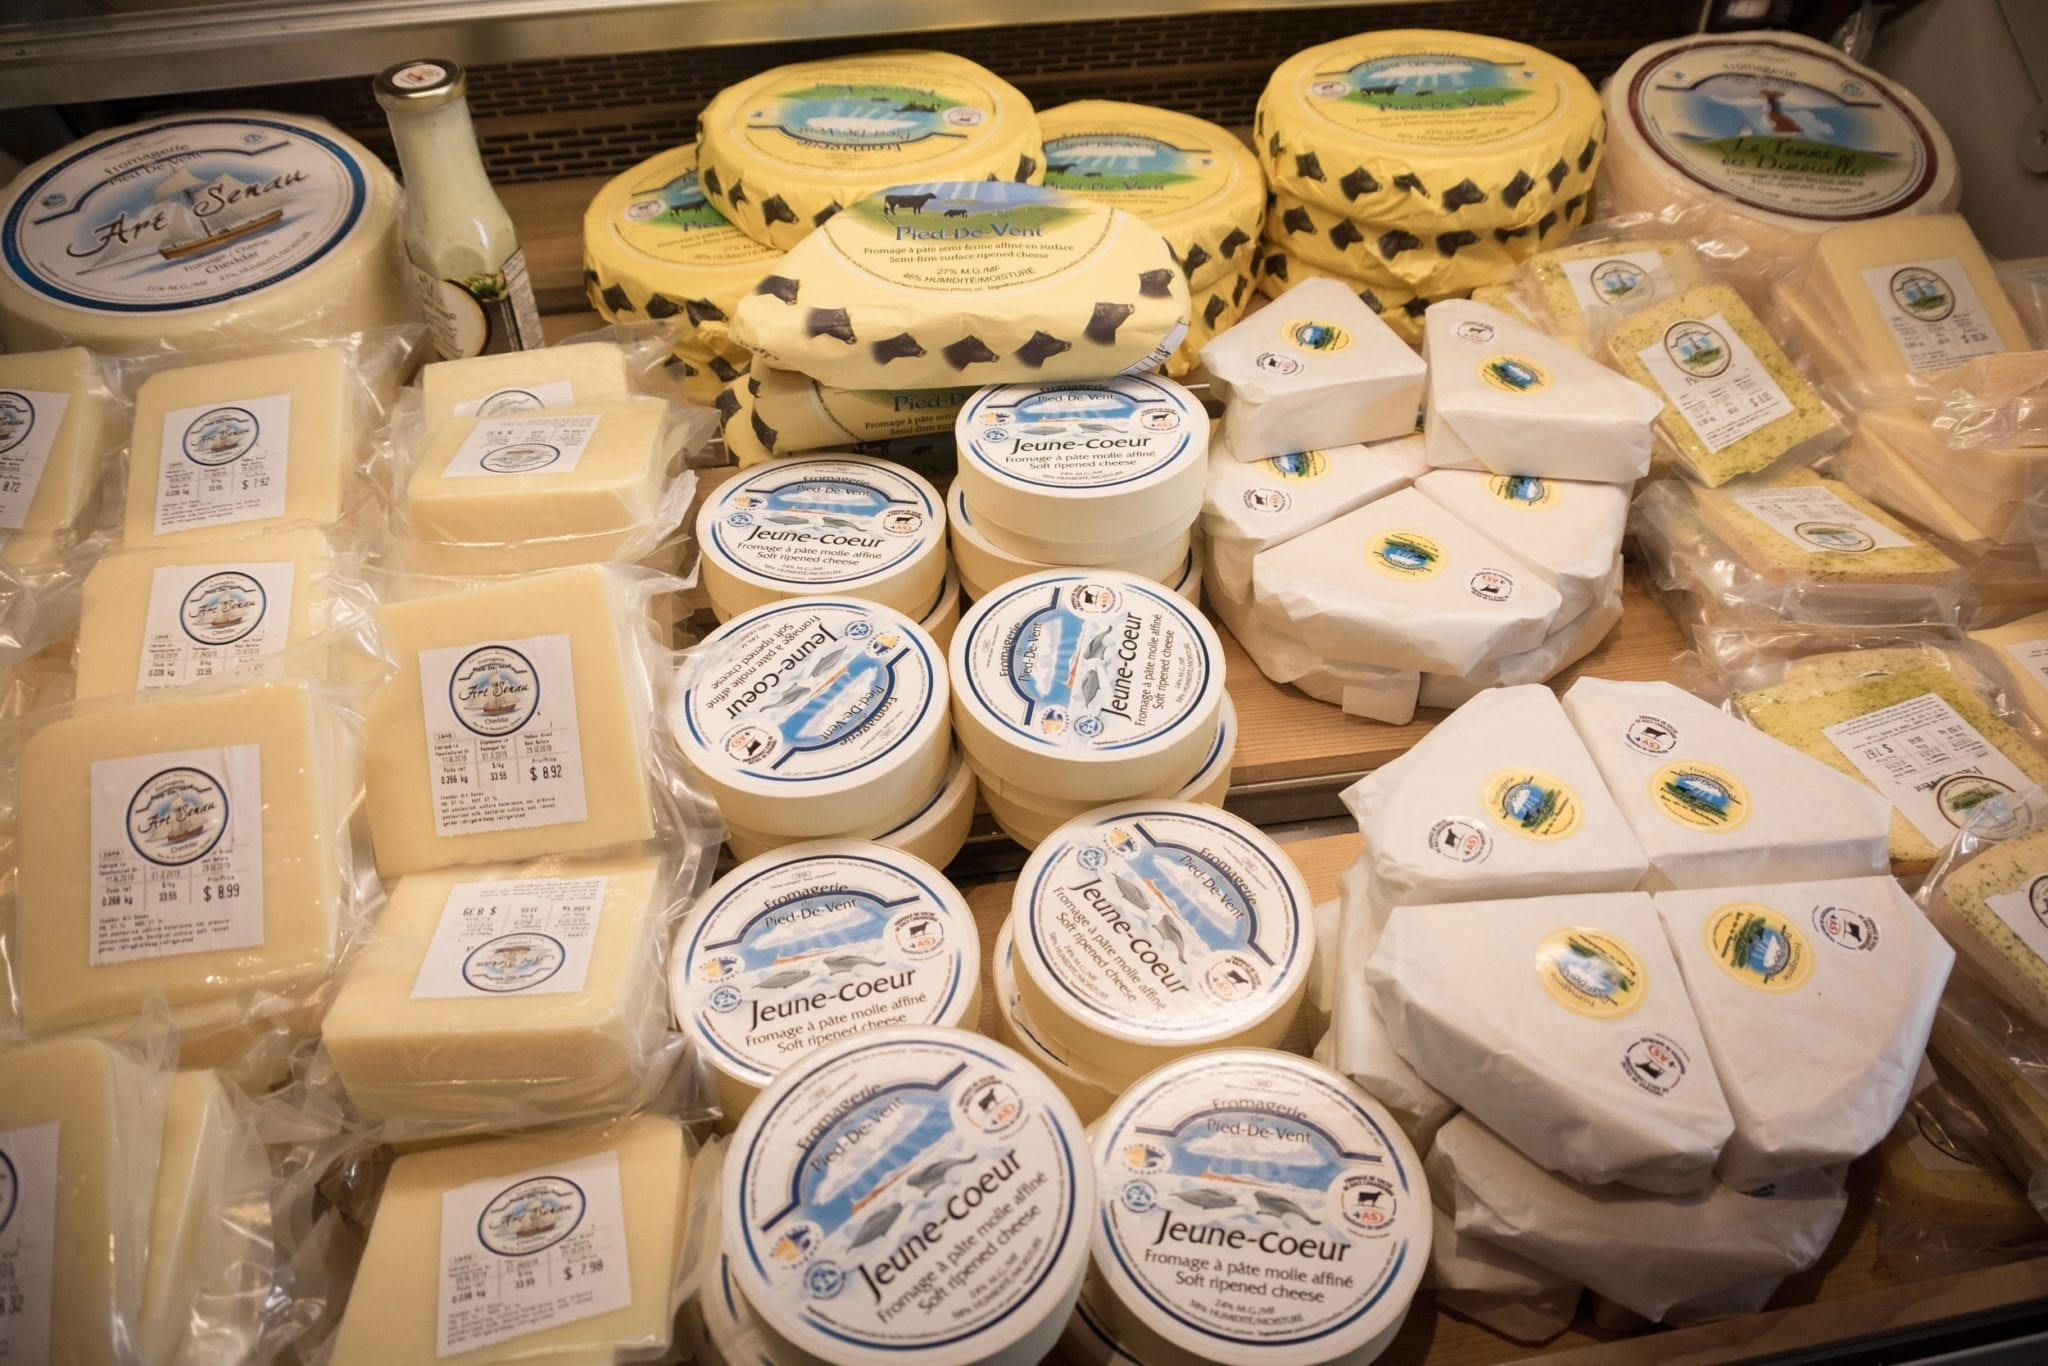 Piles of wrapped cheeses in a refrigerated container at Pied de Vent fromagerie in the Iles-de-la-Madeleine.